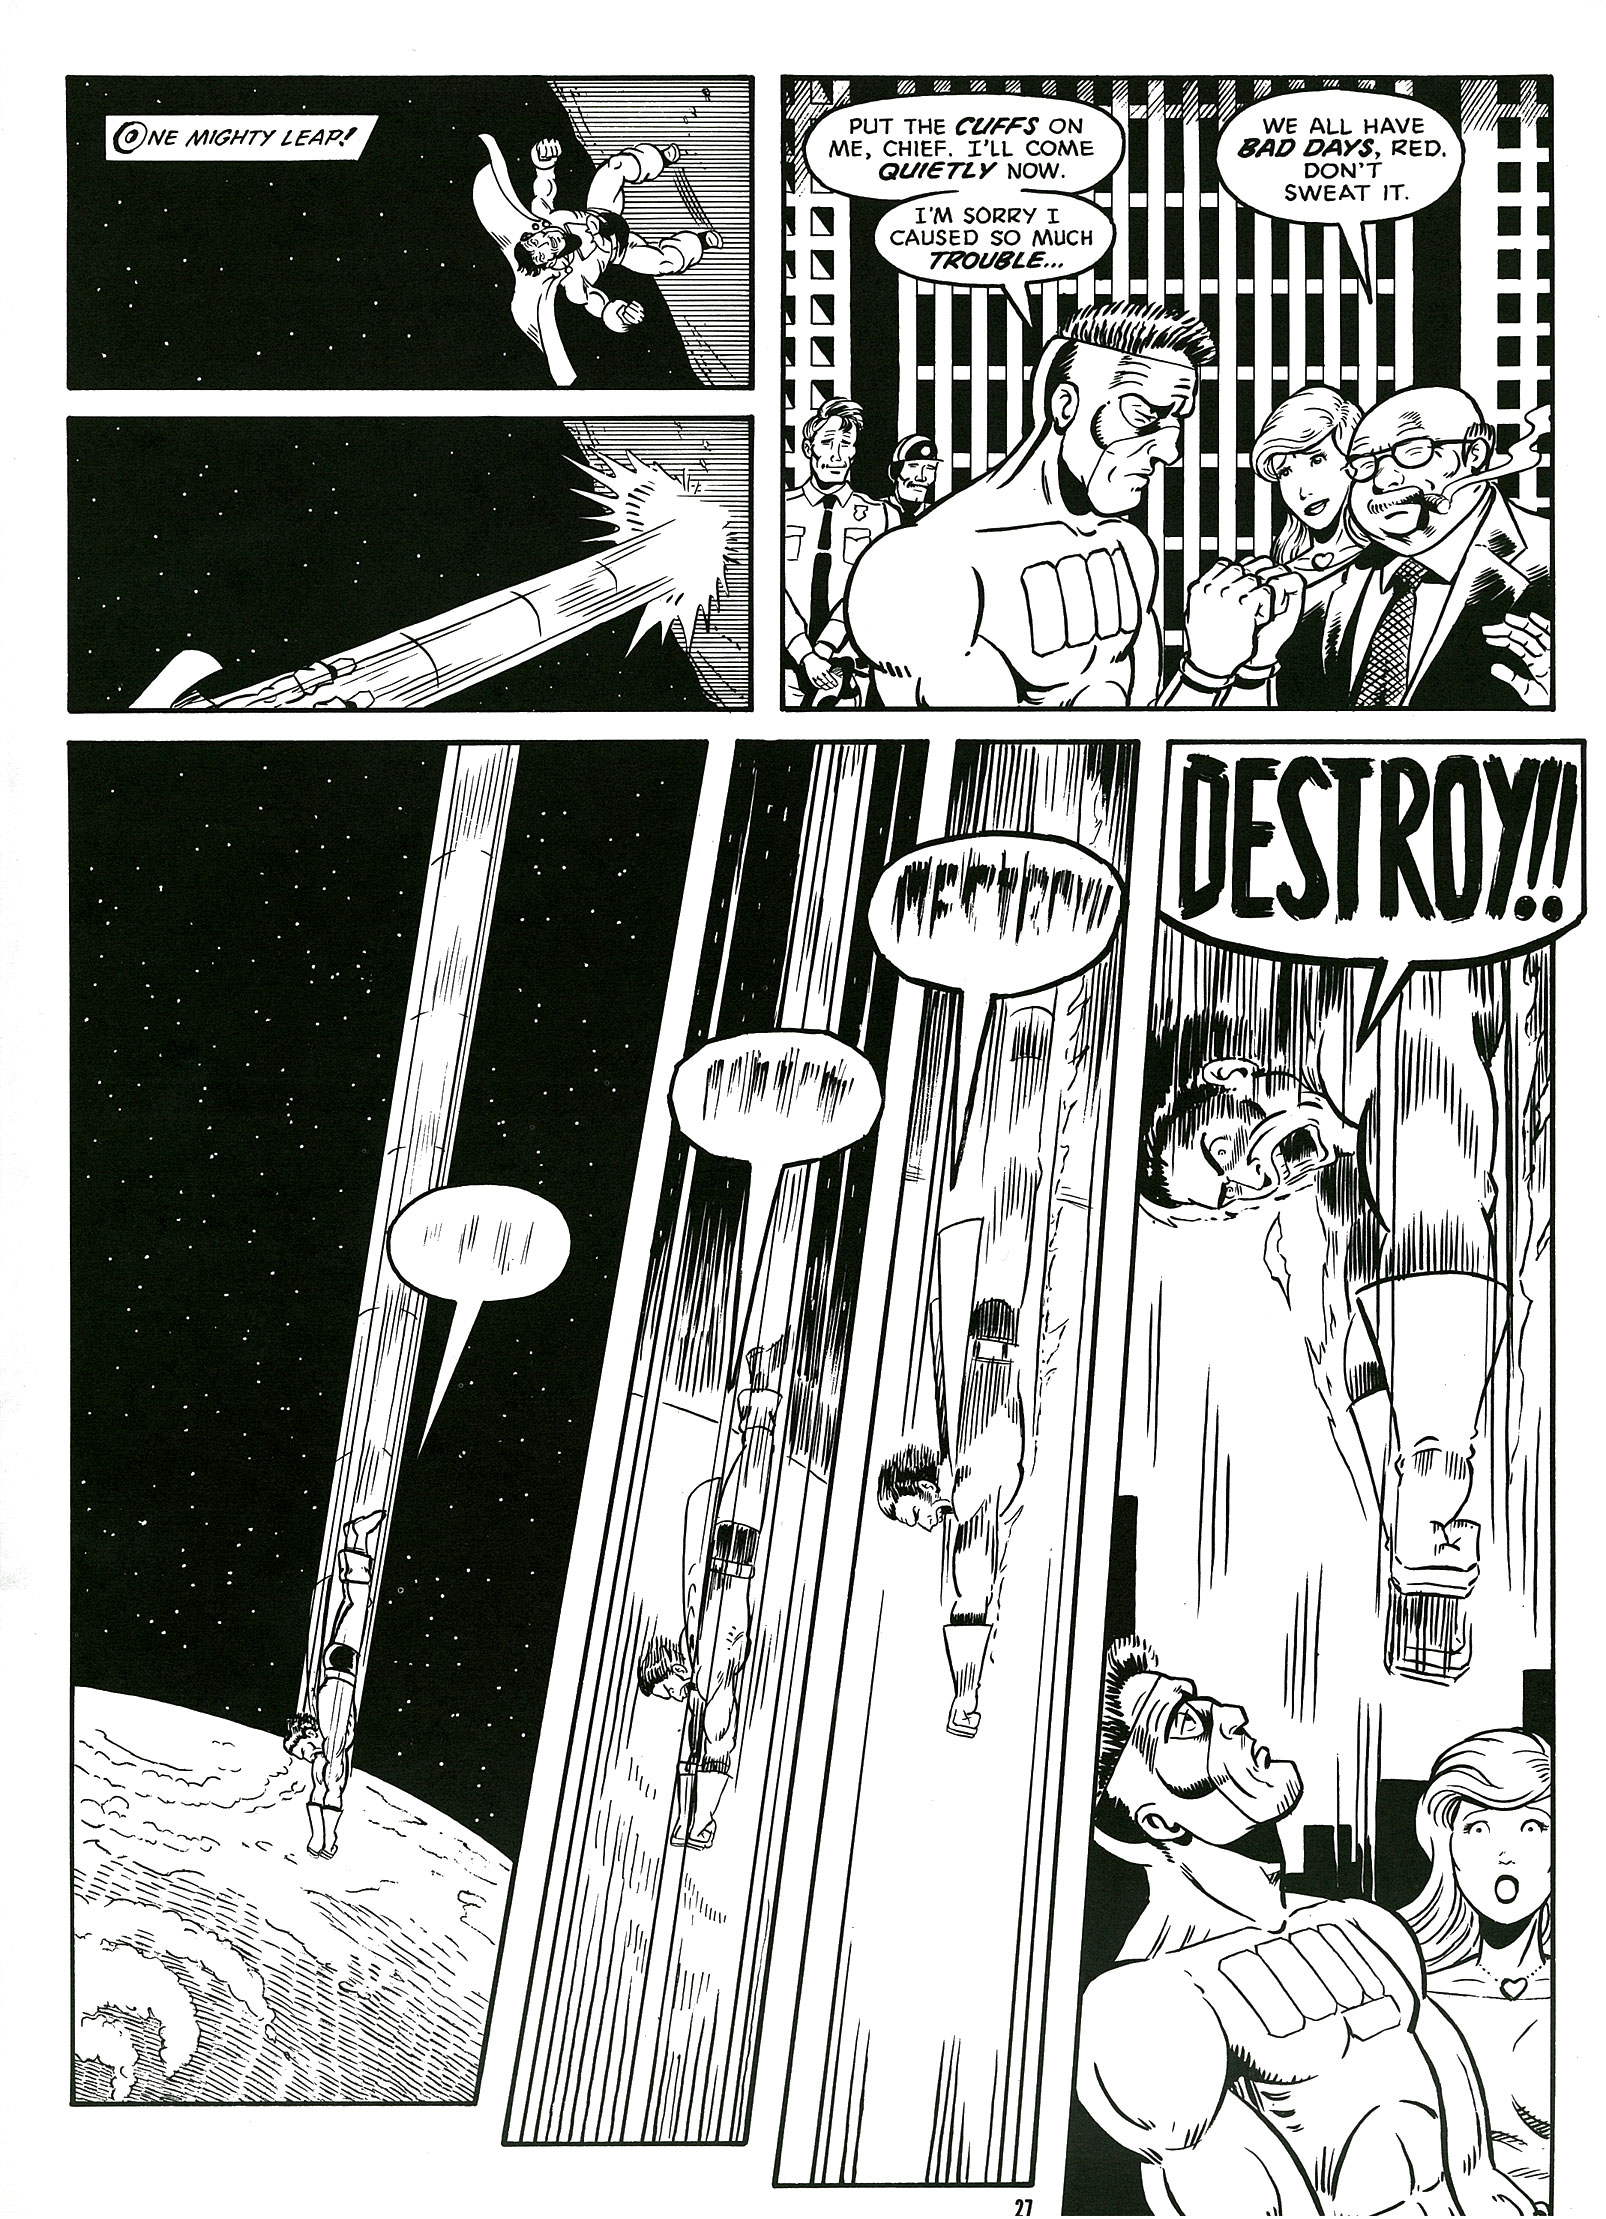 Read online Destroy!! comic -  Issue # Full - 29